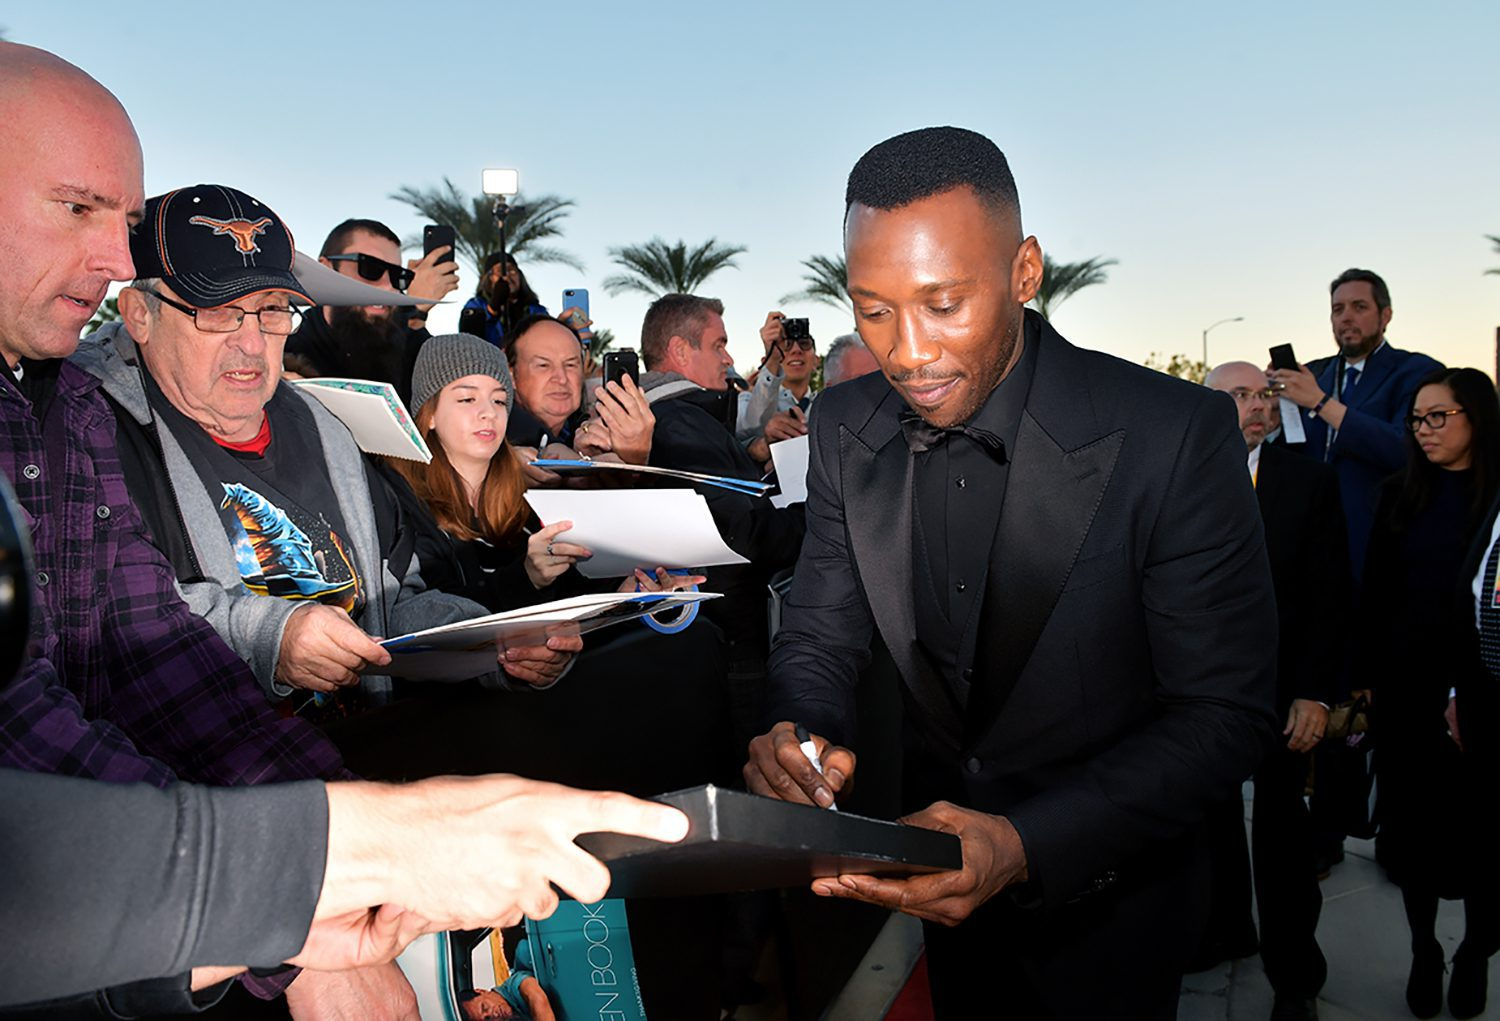 Mahershala Ali attends the 30th Annual Palm Springs International Film Festival Film Awards Gala at Palm Springs Convention Center on January 3, 2019 in Palm Springs, California. (Photo by Matt Winkelmeyer/Getty Images for Palm Springs International Film Festival )